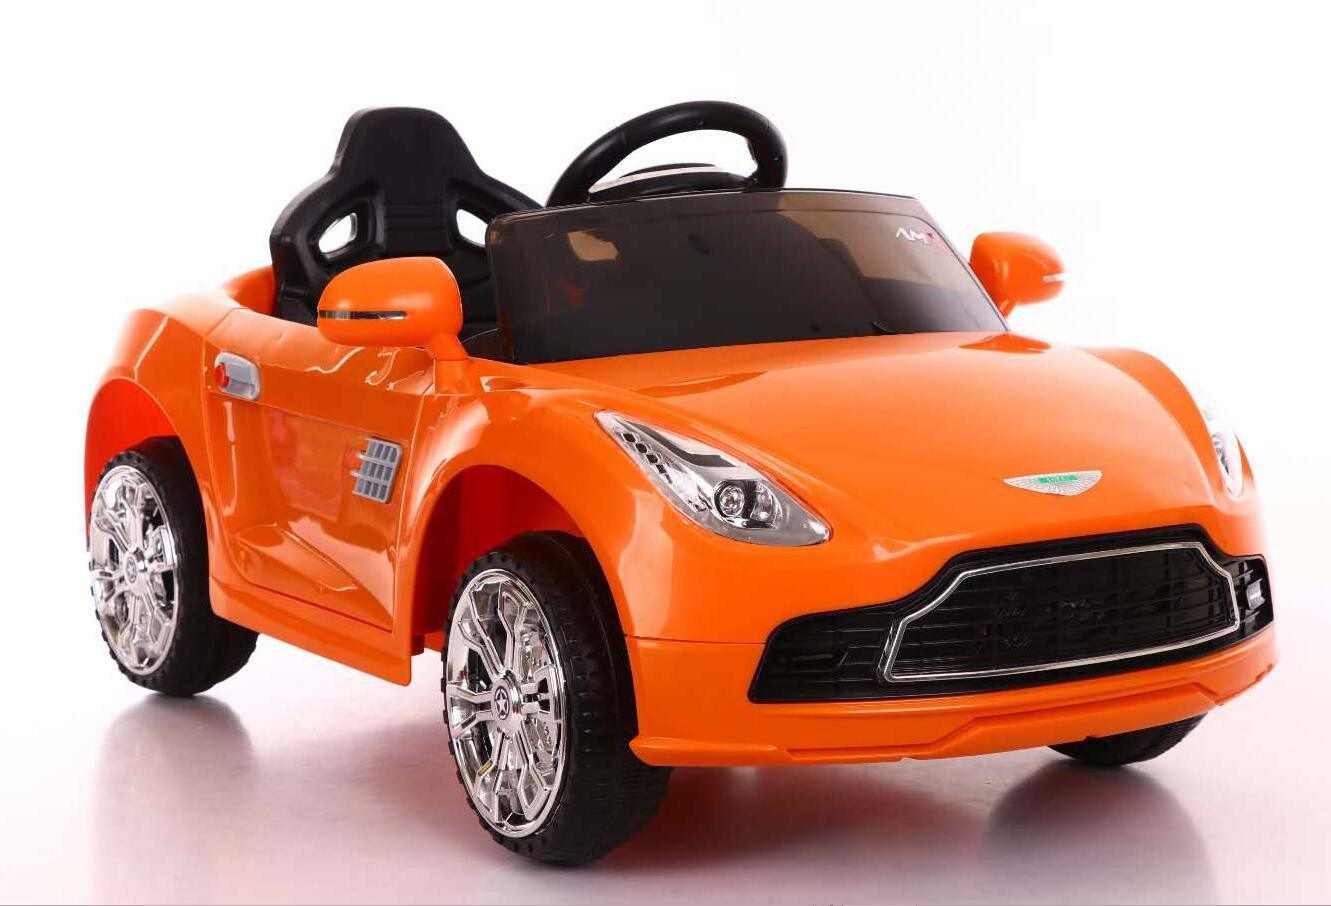 China 12V Low Price Kids Electric Battery Kids Toys Car, 2019 Baby Car for  Children Driving, Ride on Electric Toy Car for Kids to Drive - China Kids  Ride on Car and